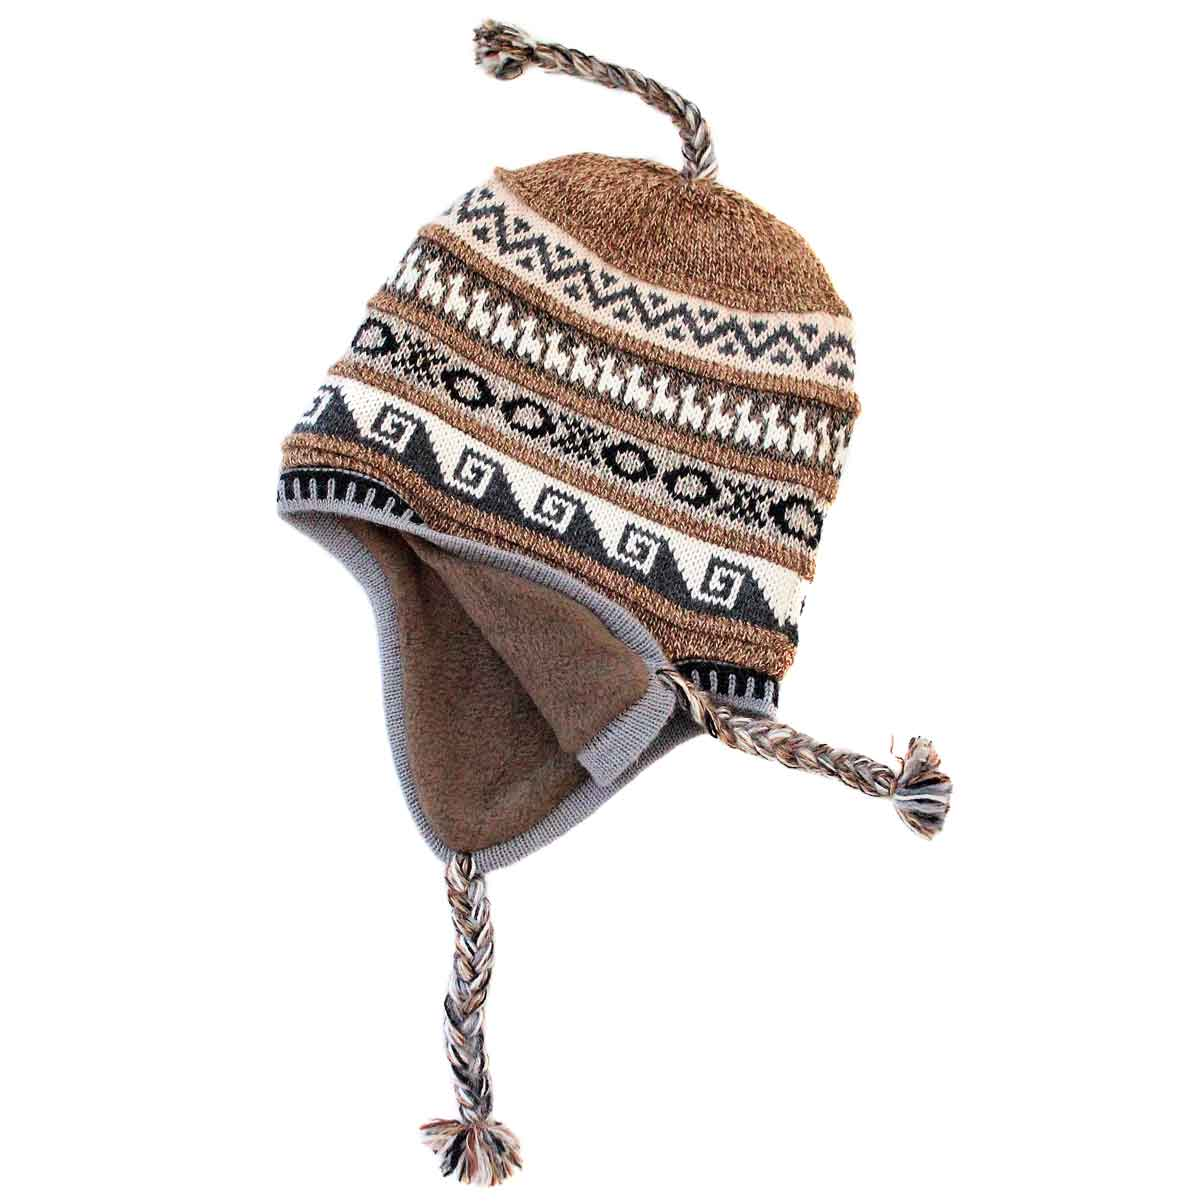 Inka-Products-Bonnet Péruvien Chullo-Alpaga Marron Ethnique-2